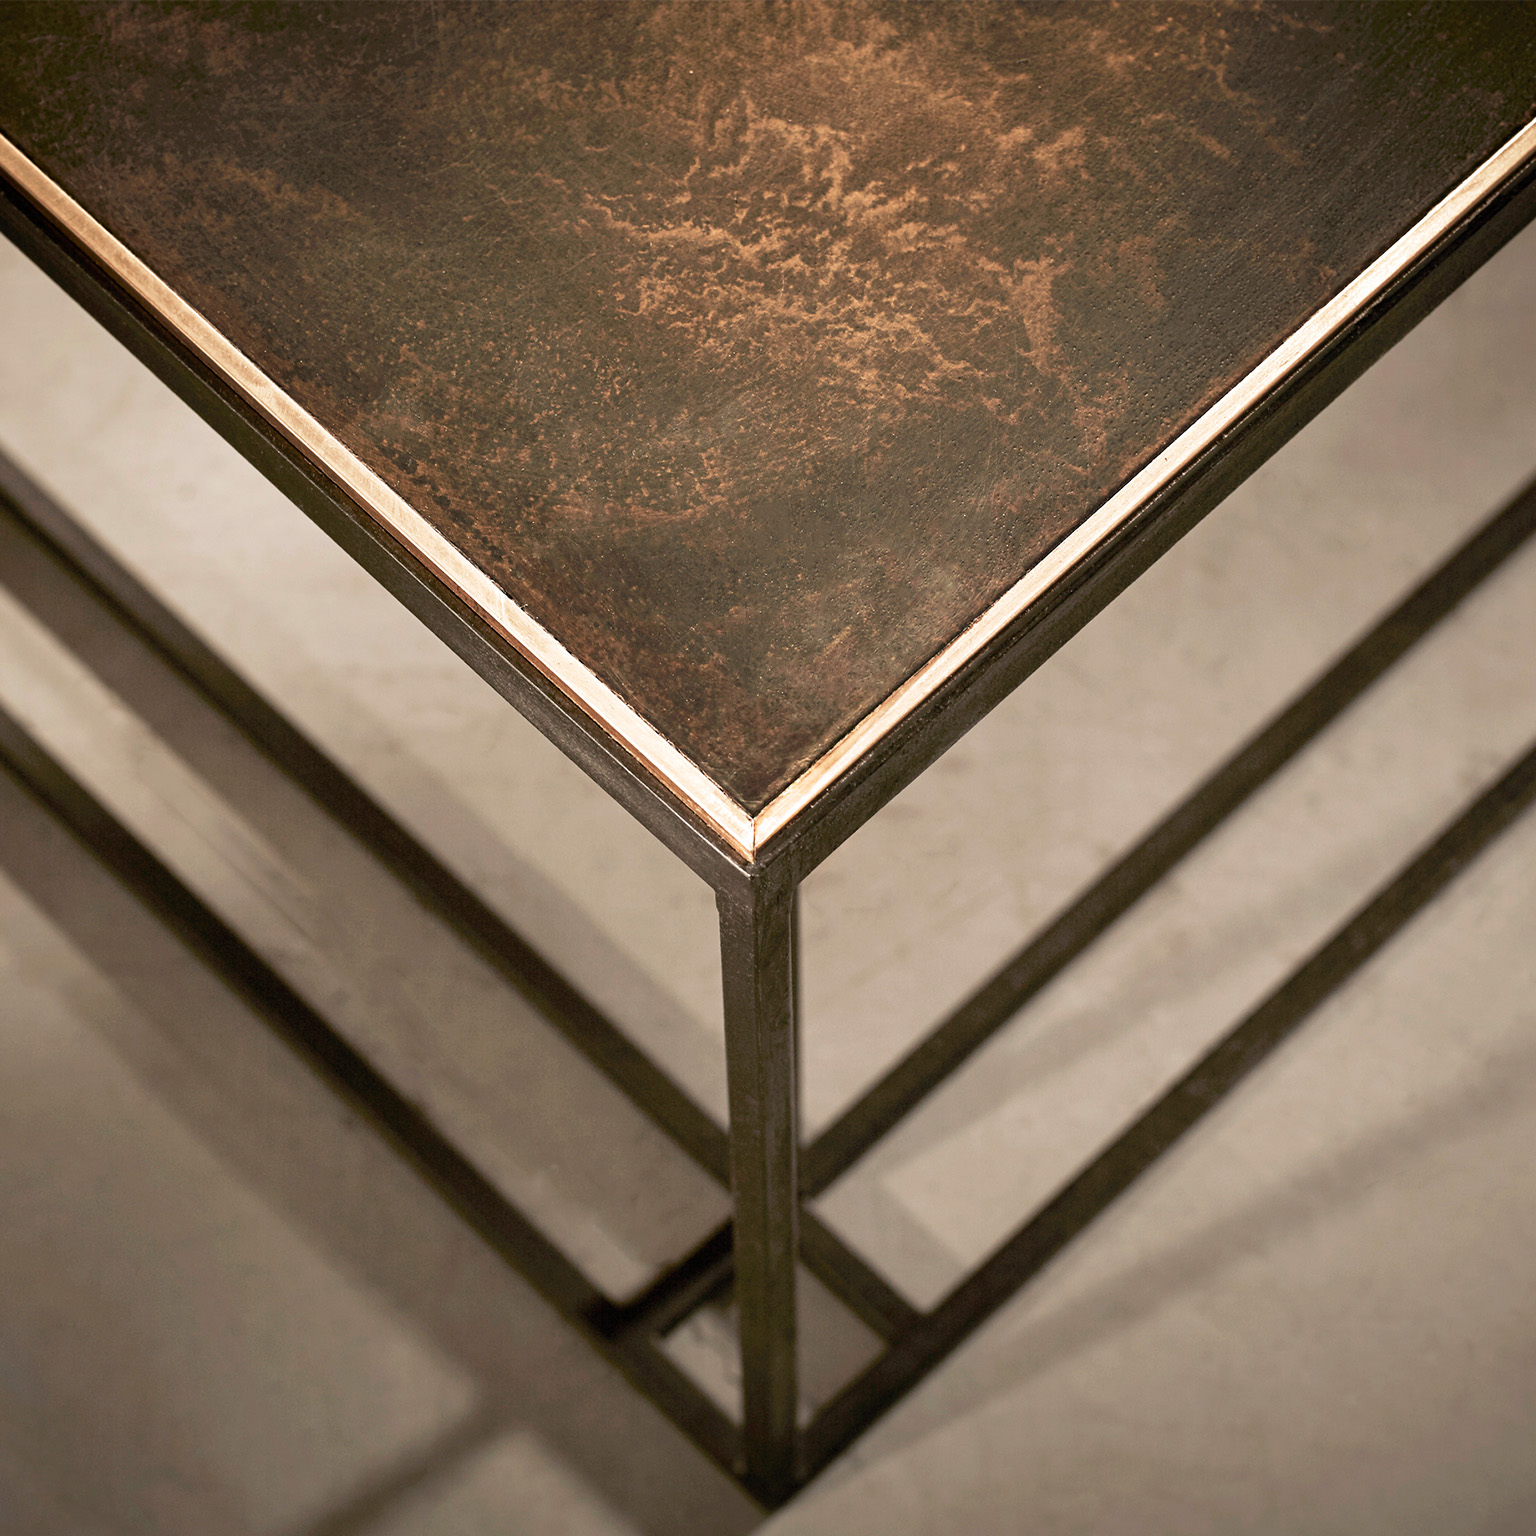 Brass Binate Coffee Table - The Brass Binate Coffee Table comes in blackened steel and patinated brass, with a polished brass trim (other finishes available). This product comes in two sizes to suit almost any room and is hand made and crafted to order in the North of England. Please enquire for more information and for custom sizes .</p>  | Matter of Stuff